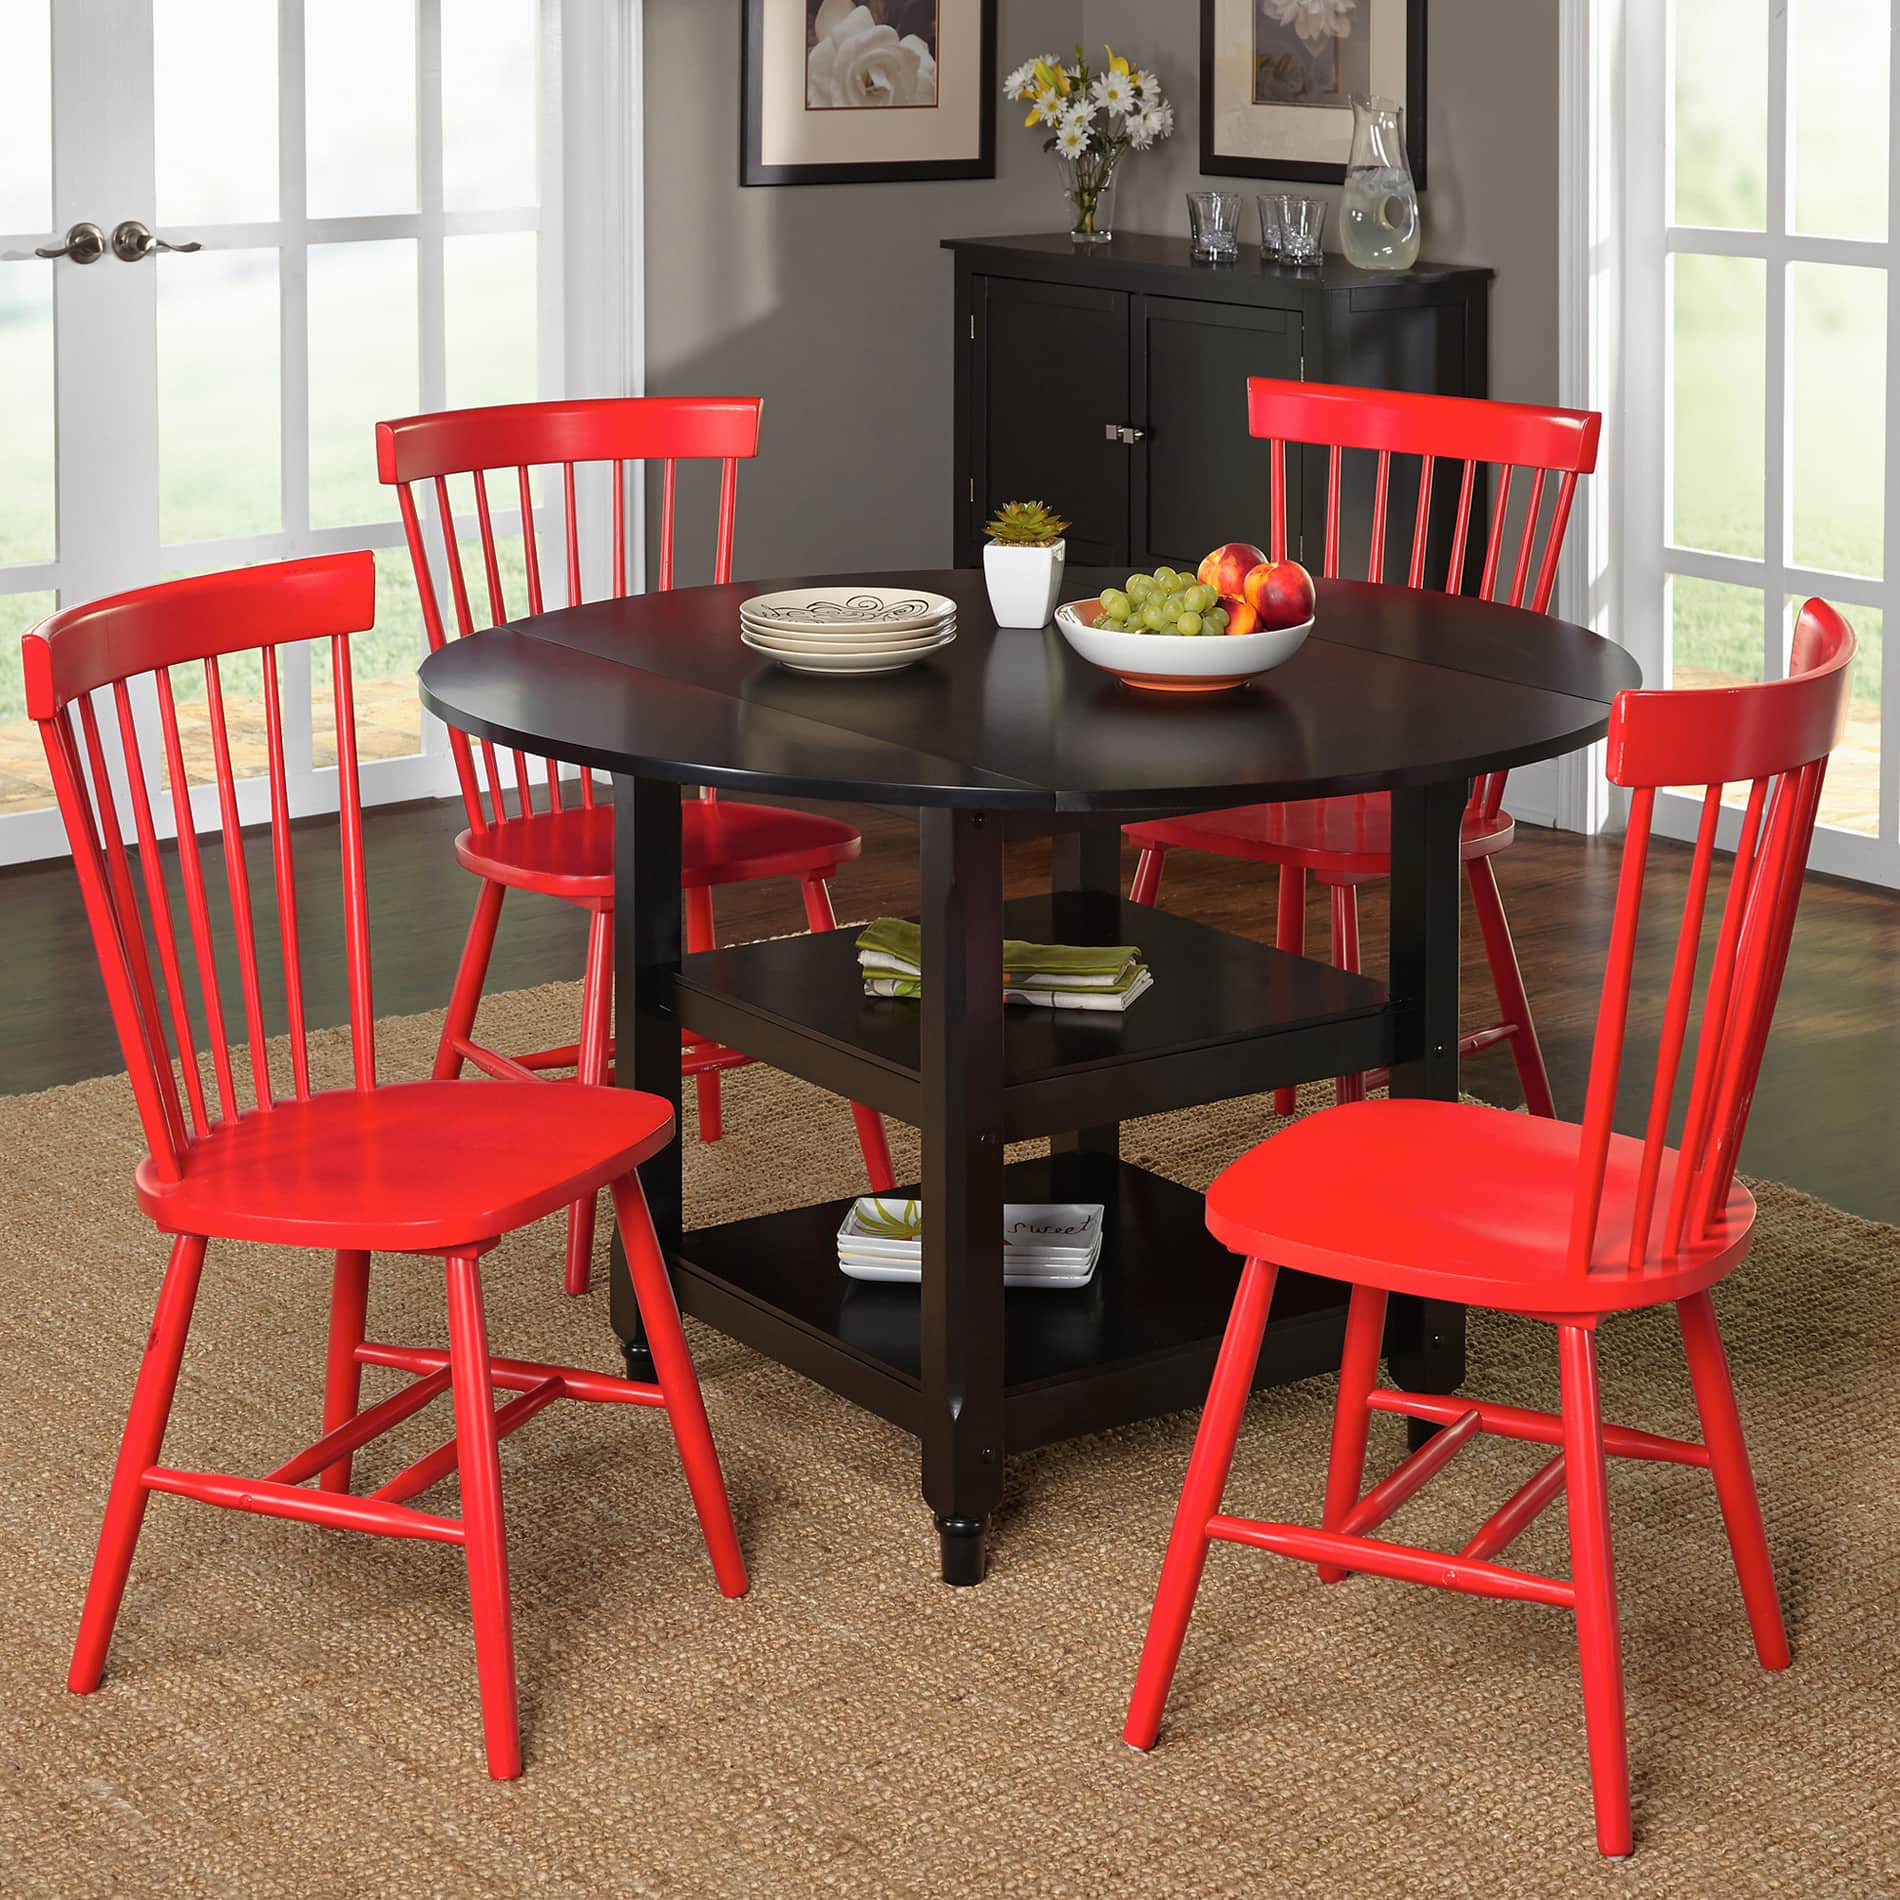 Kitchen dining room sets for less for Dining room furniture 0 finance